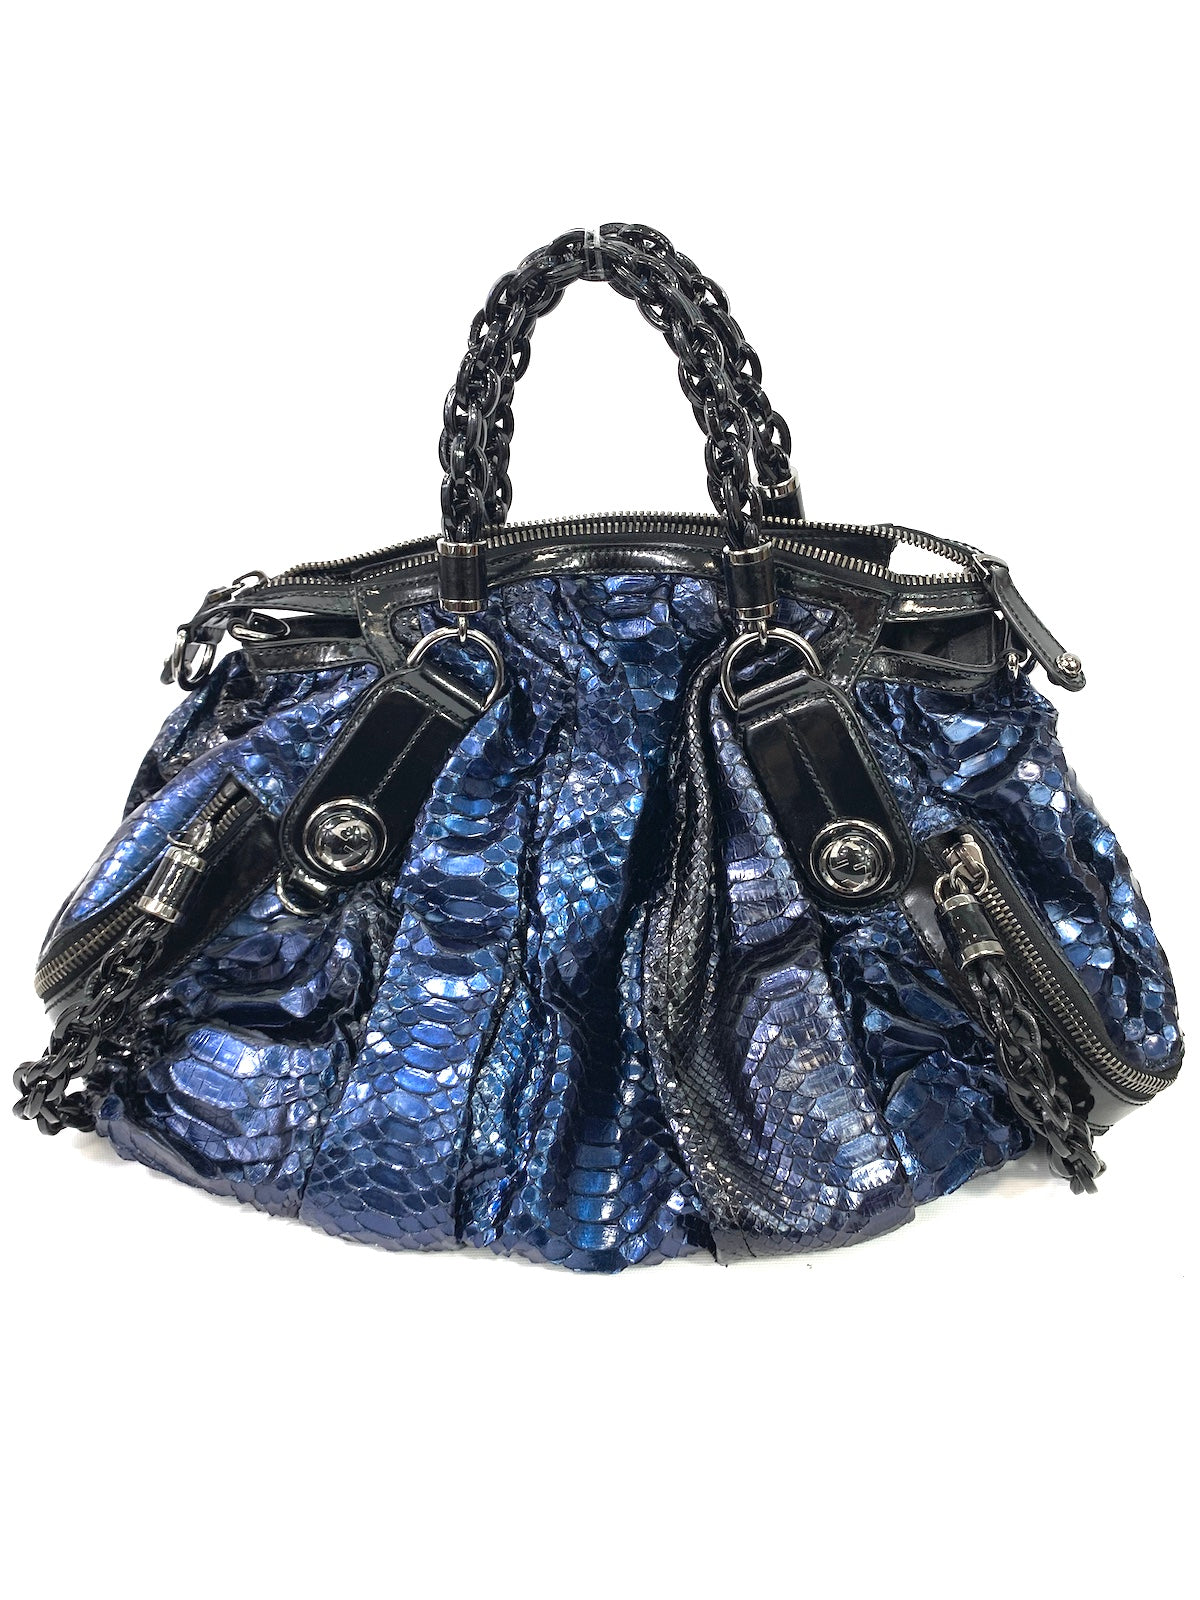 efb3c74cc89e87 GUCCI Women Black Patent Leather Blue Python Lim. Ed. Pelham Bag Satchel  Purse Tote